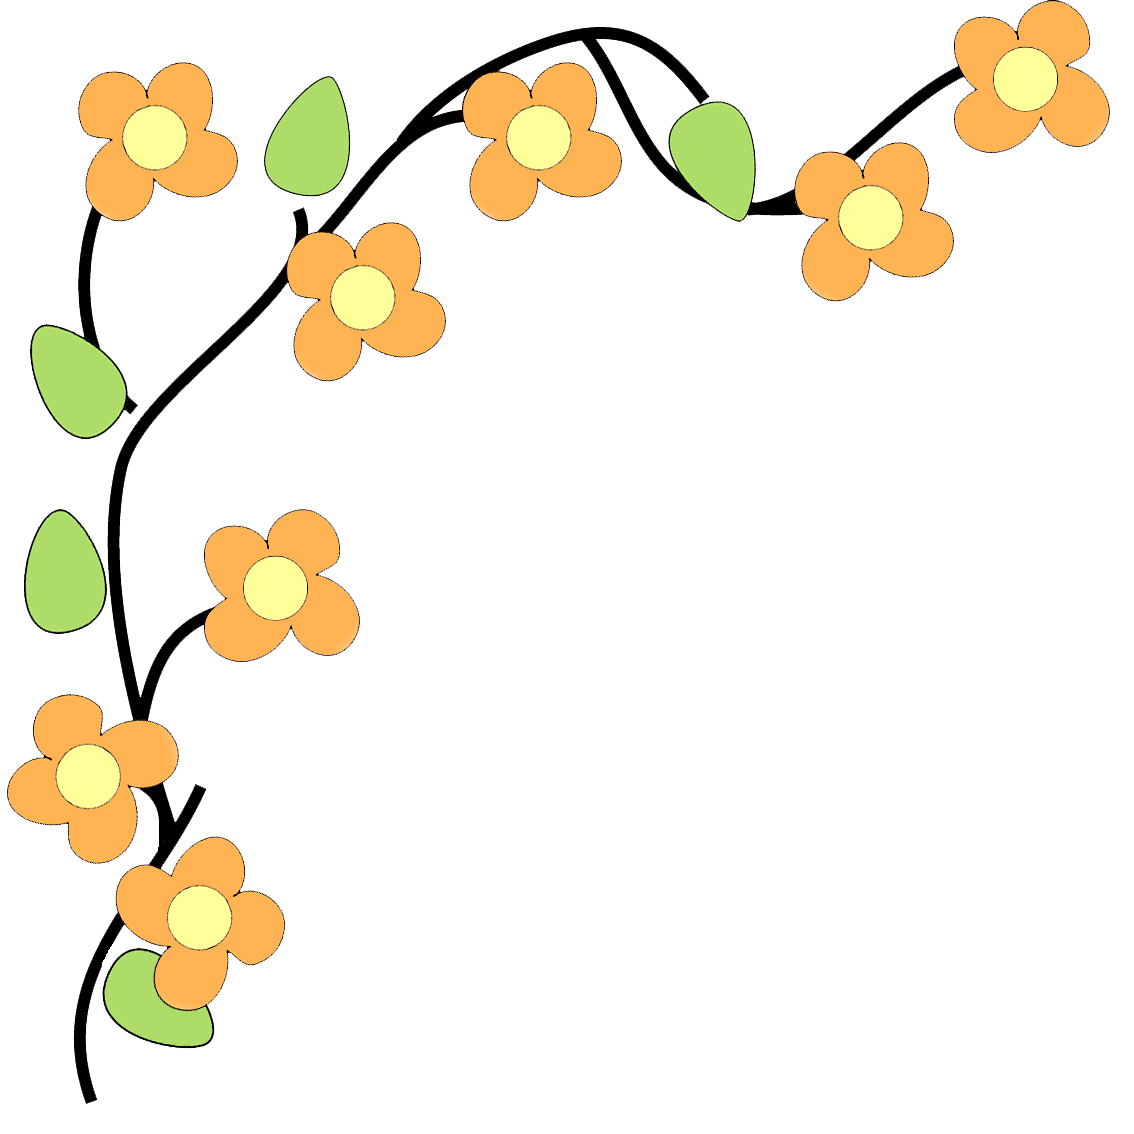 image transparent Flower border kid flowers. Fall borders clipart.